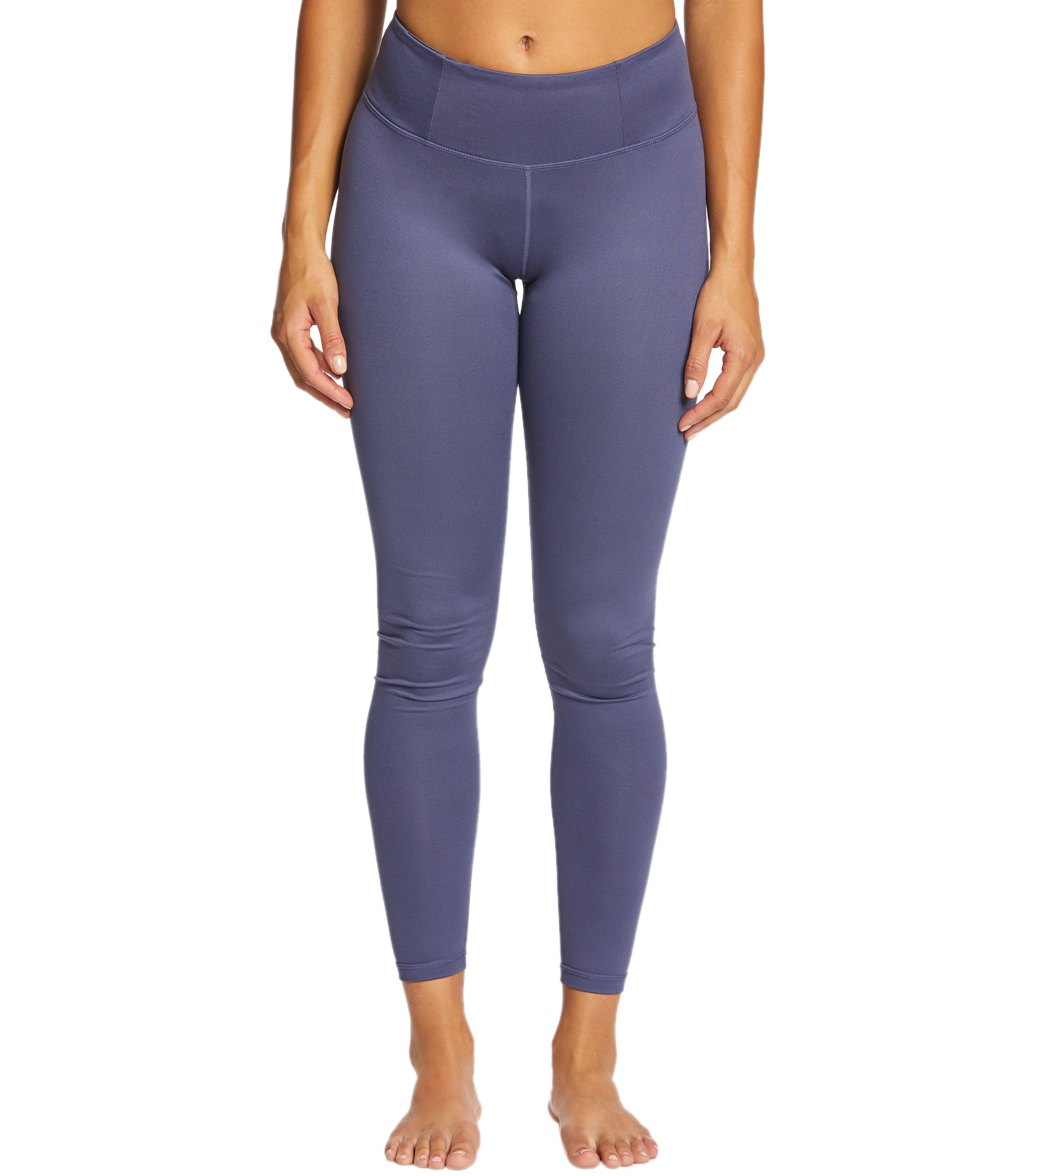 5230e4932c Manduka Essential Long Yoga Leggings at YogaOutlet.com - Free Shipping